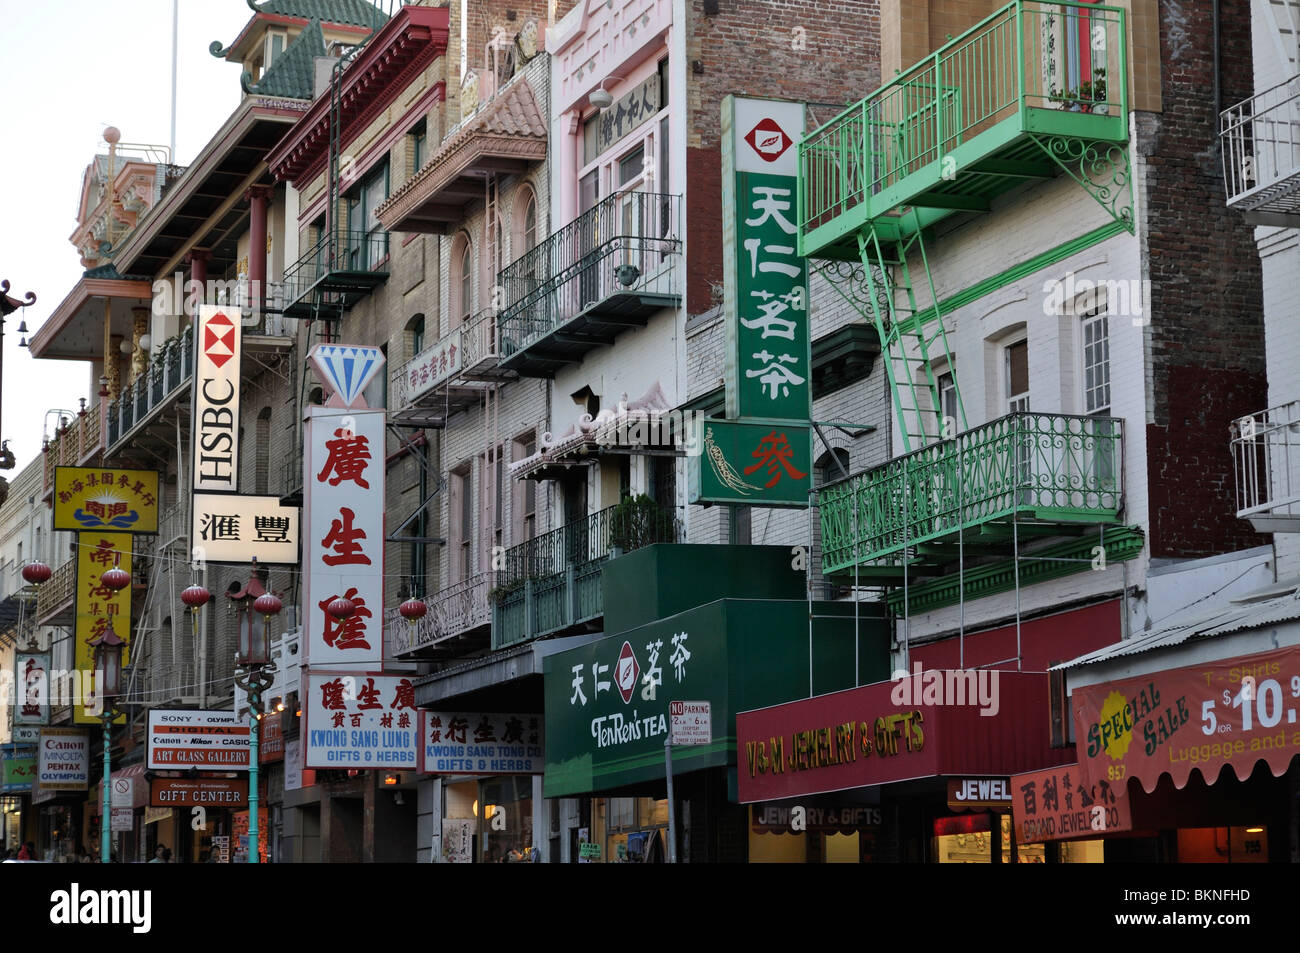 Street scene in China town section of San Francisco, CA Stock Photo